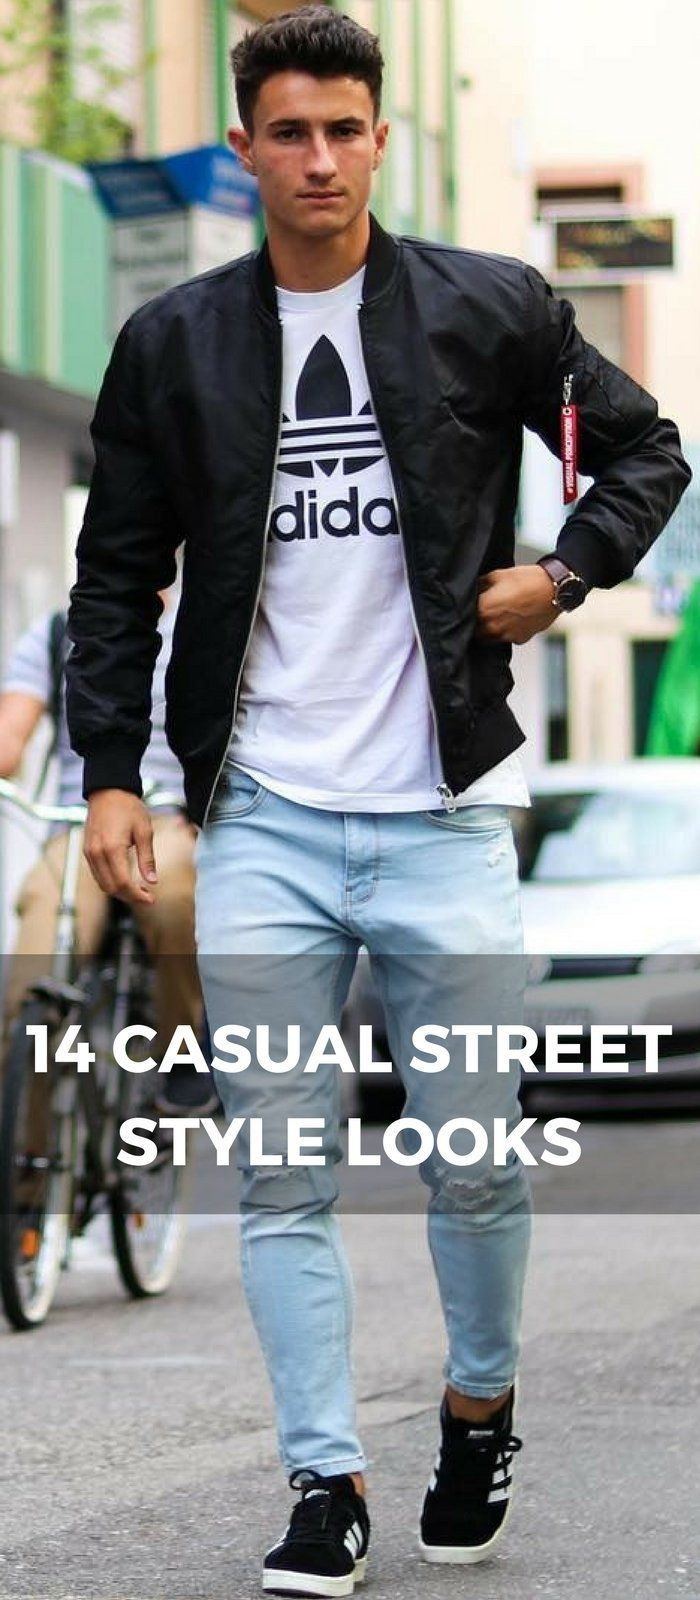 cool casual looks for guys